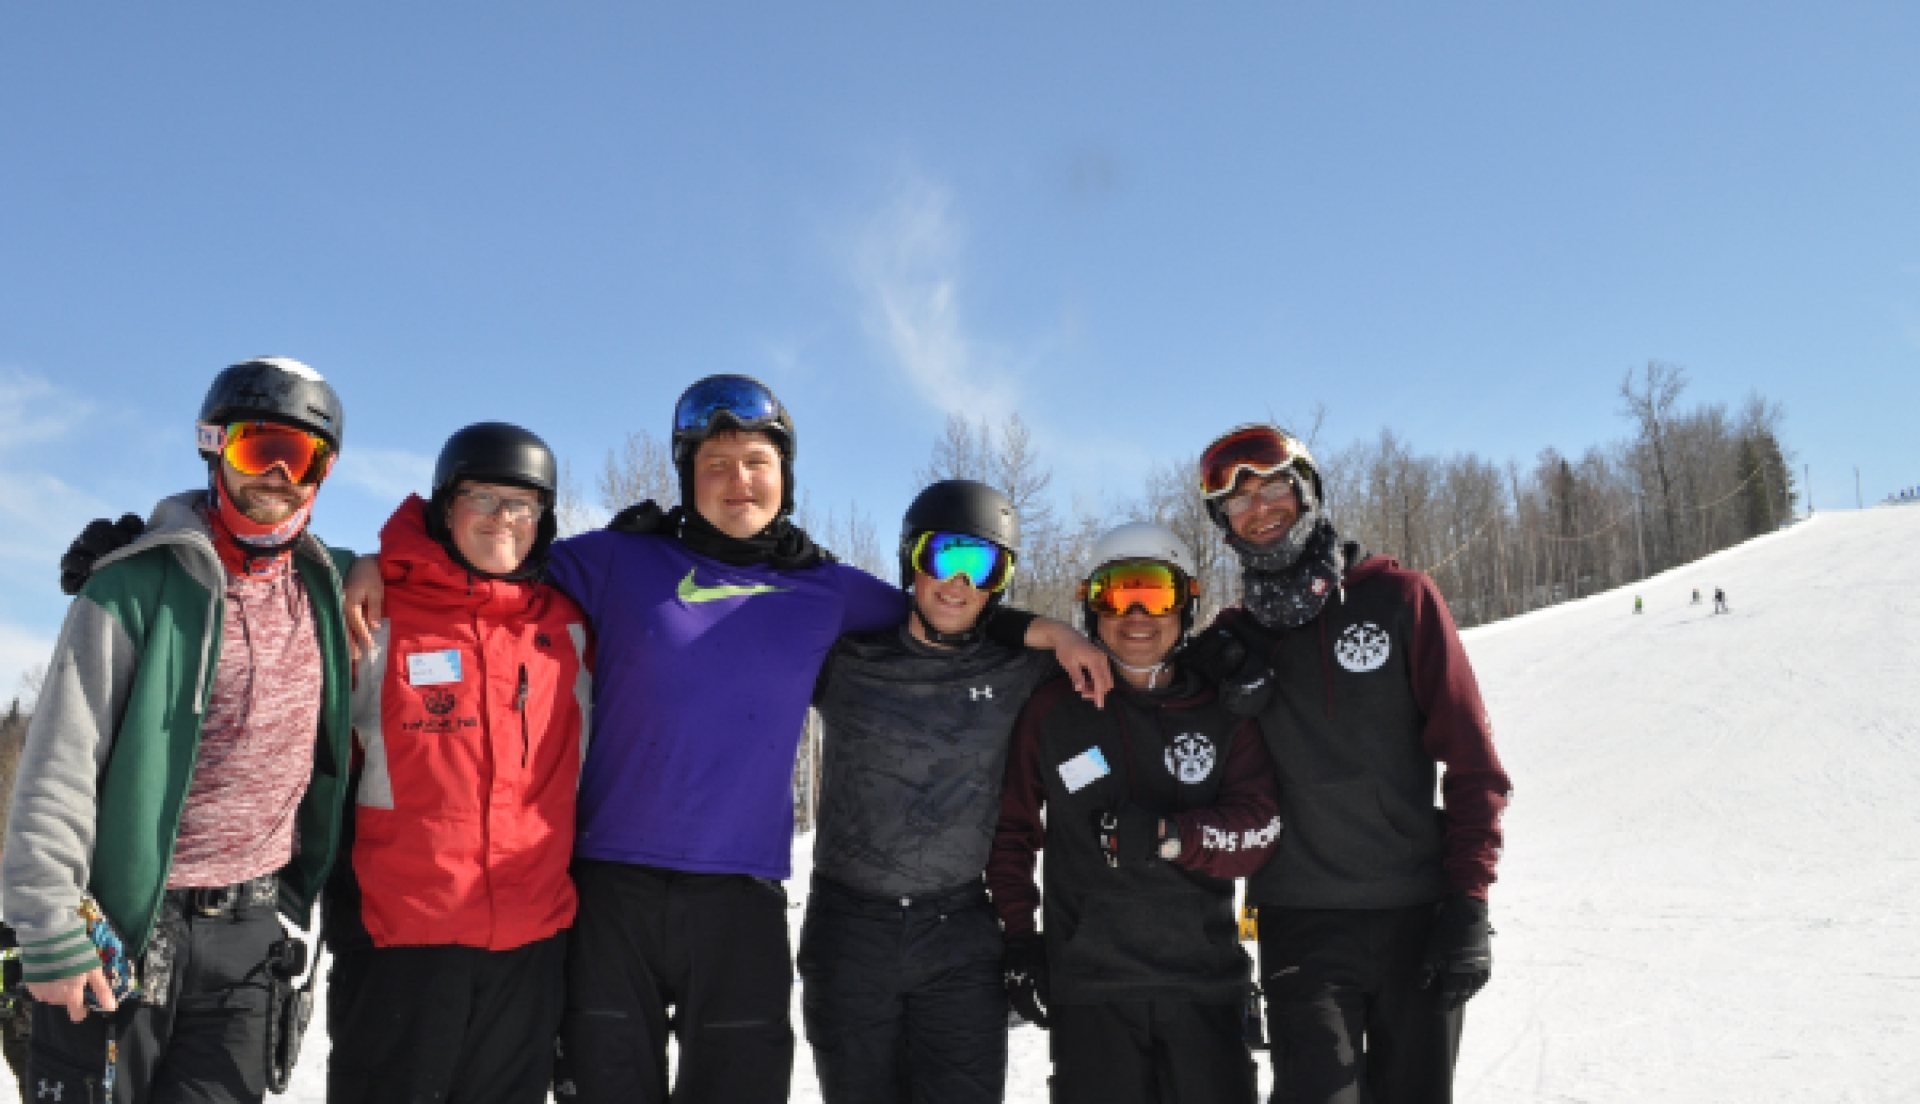 skiing, snowboarding, snowboarding lesson,  ski lessons, edmonton ski, edmonton sport, edmonton snowboard, winter fun, embrace winter, group lesson bundles